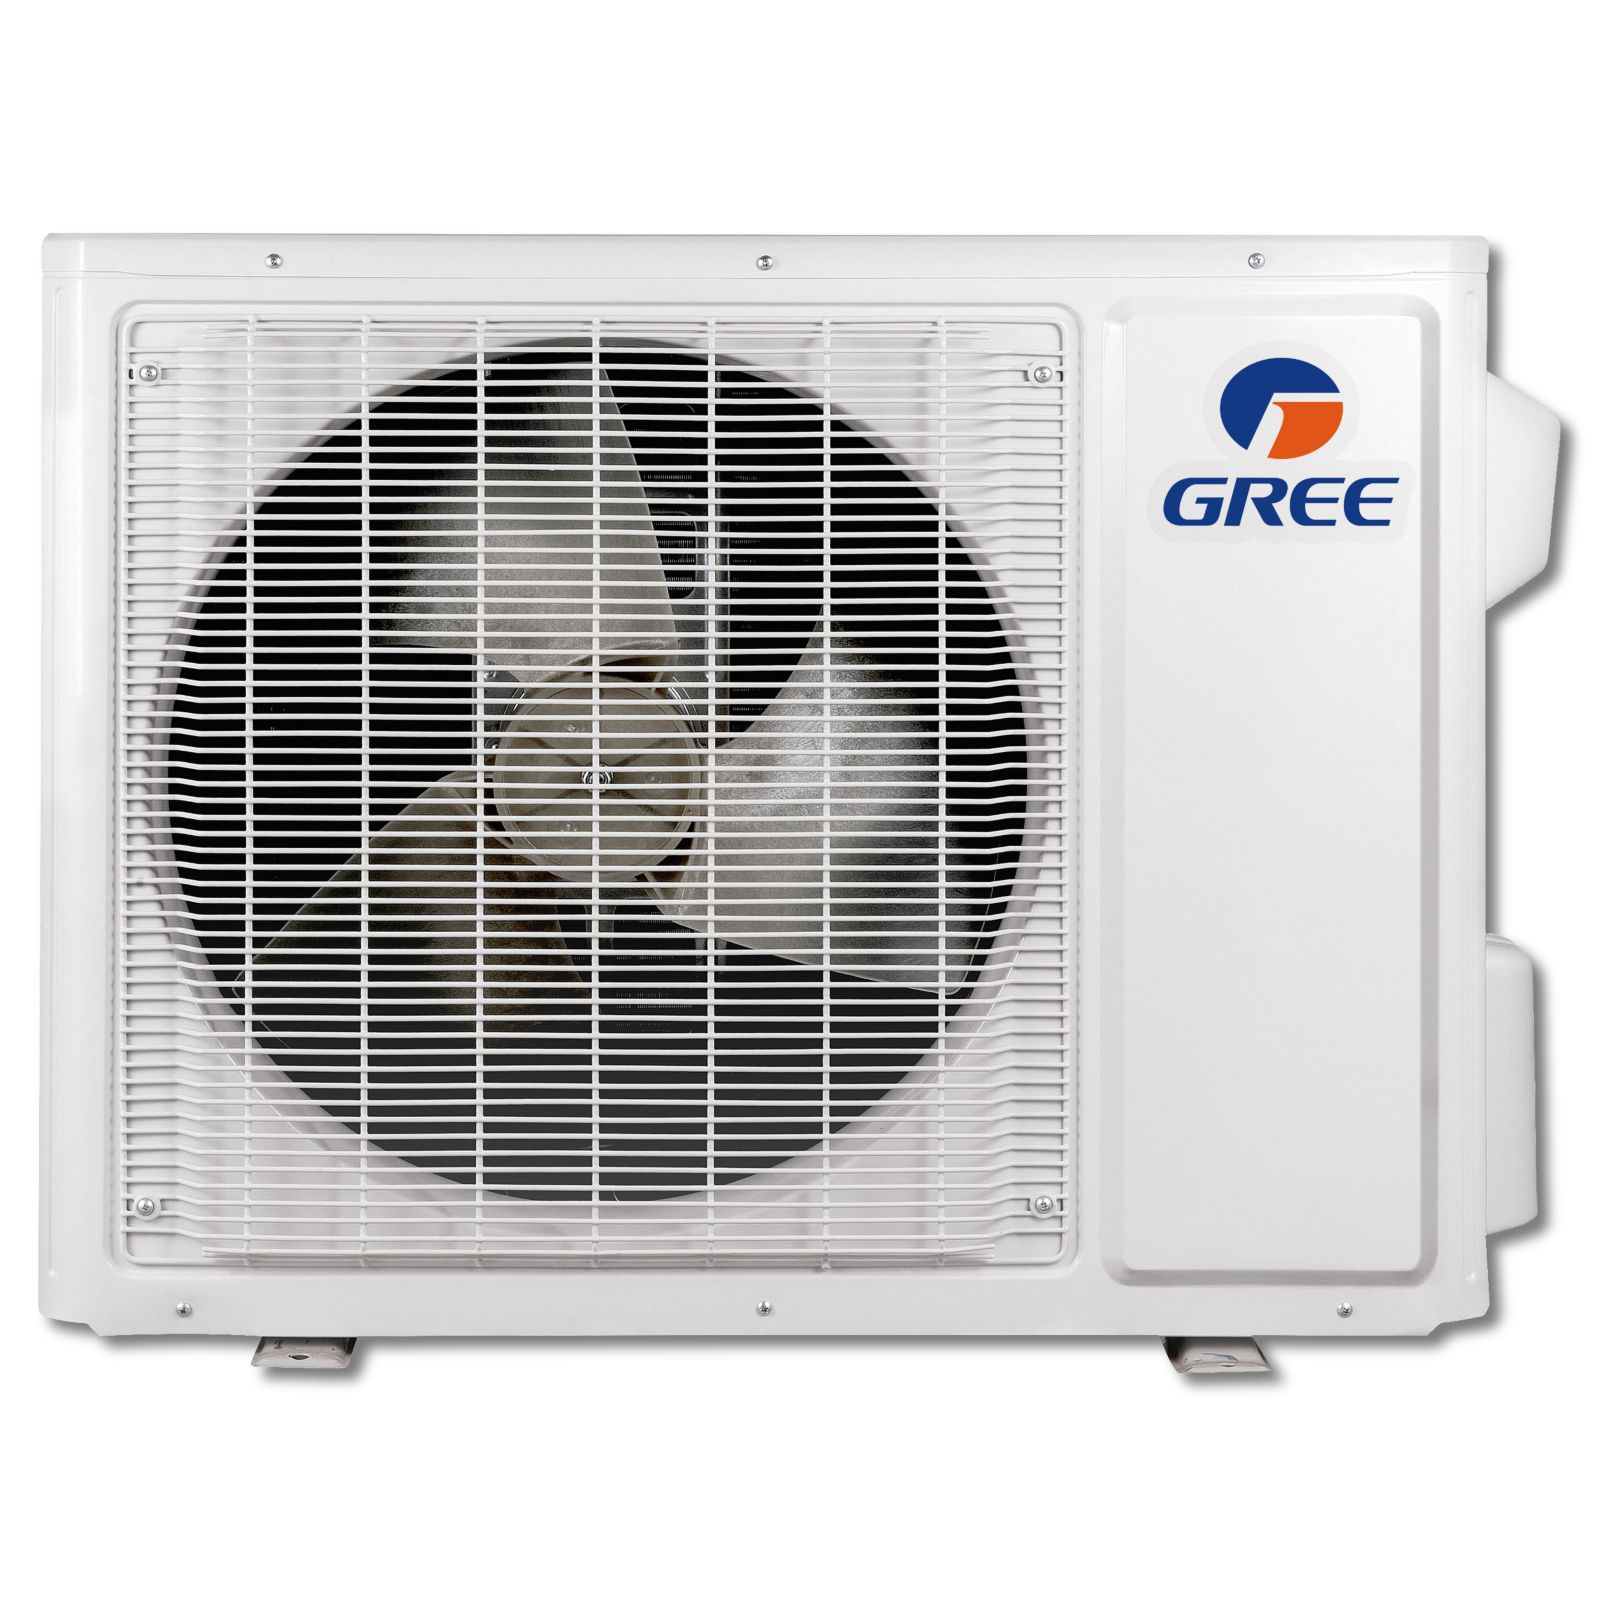 GREE RIO18HP230V1AO - RIO Ductless Outdoor Unit 208-230/60 High Efficiency DC Inverter Technology 16 SEER, 11.1 EER, 8.5 HSPF